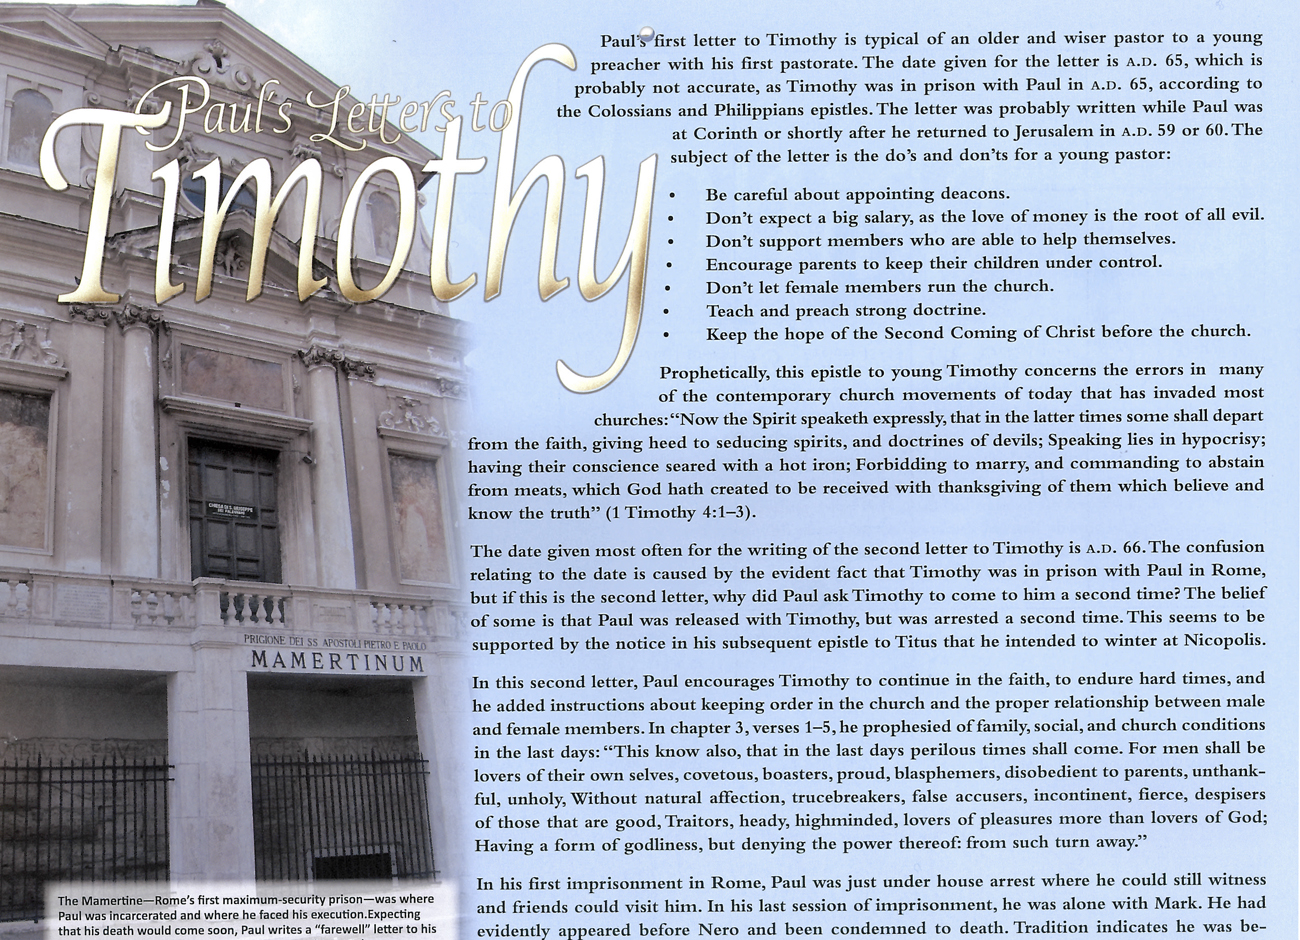 2012 Prophecy Calendar: October - Paul's Letter to Timothy